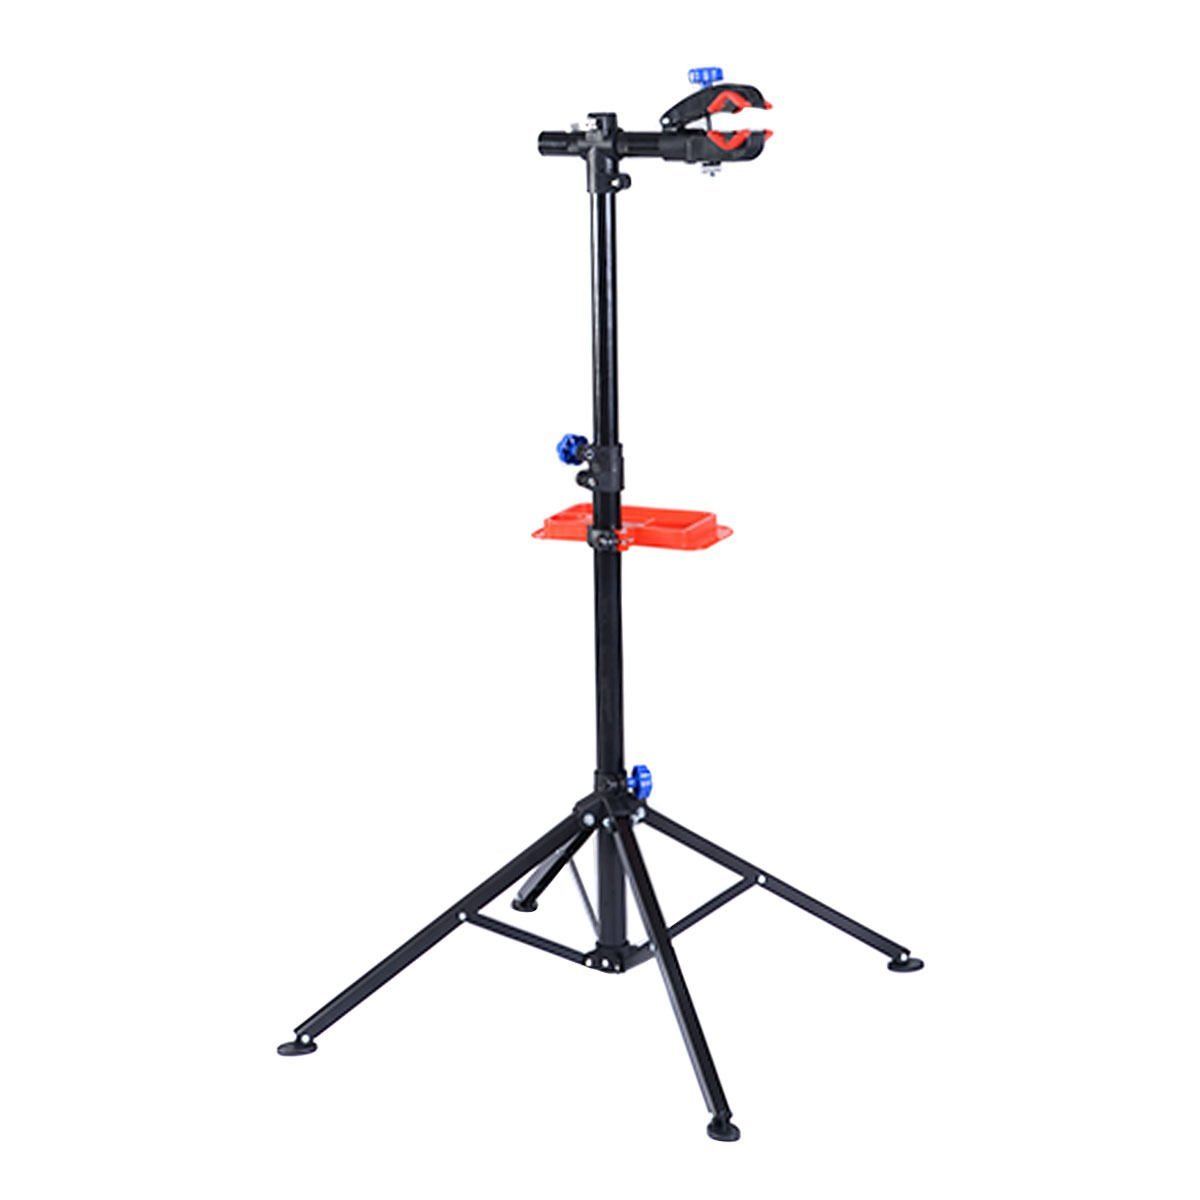 S AFSTAR Pro Mechanic Bike Repair Stand Adjustable 41'' To 75'' Cycle Rack Bicycle Workstand with Tool Tray